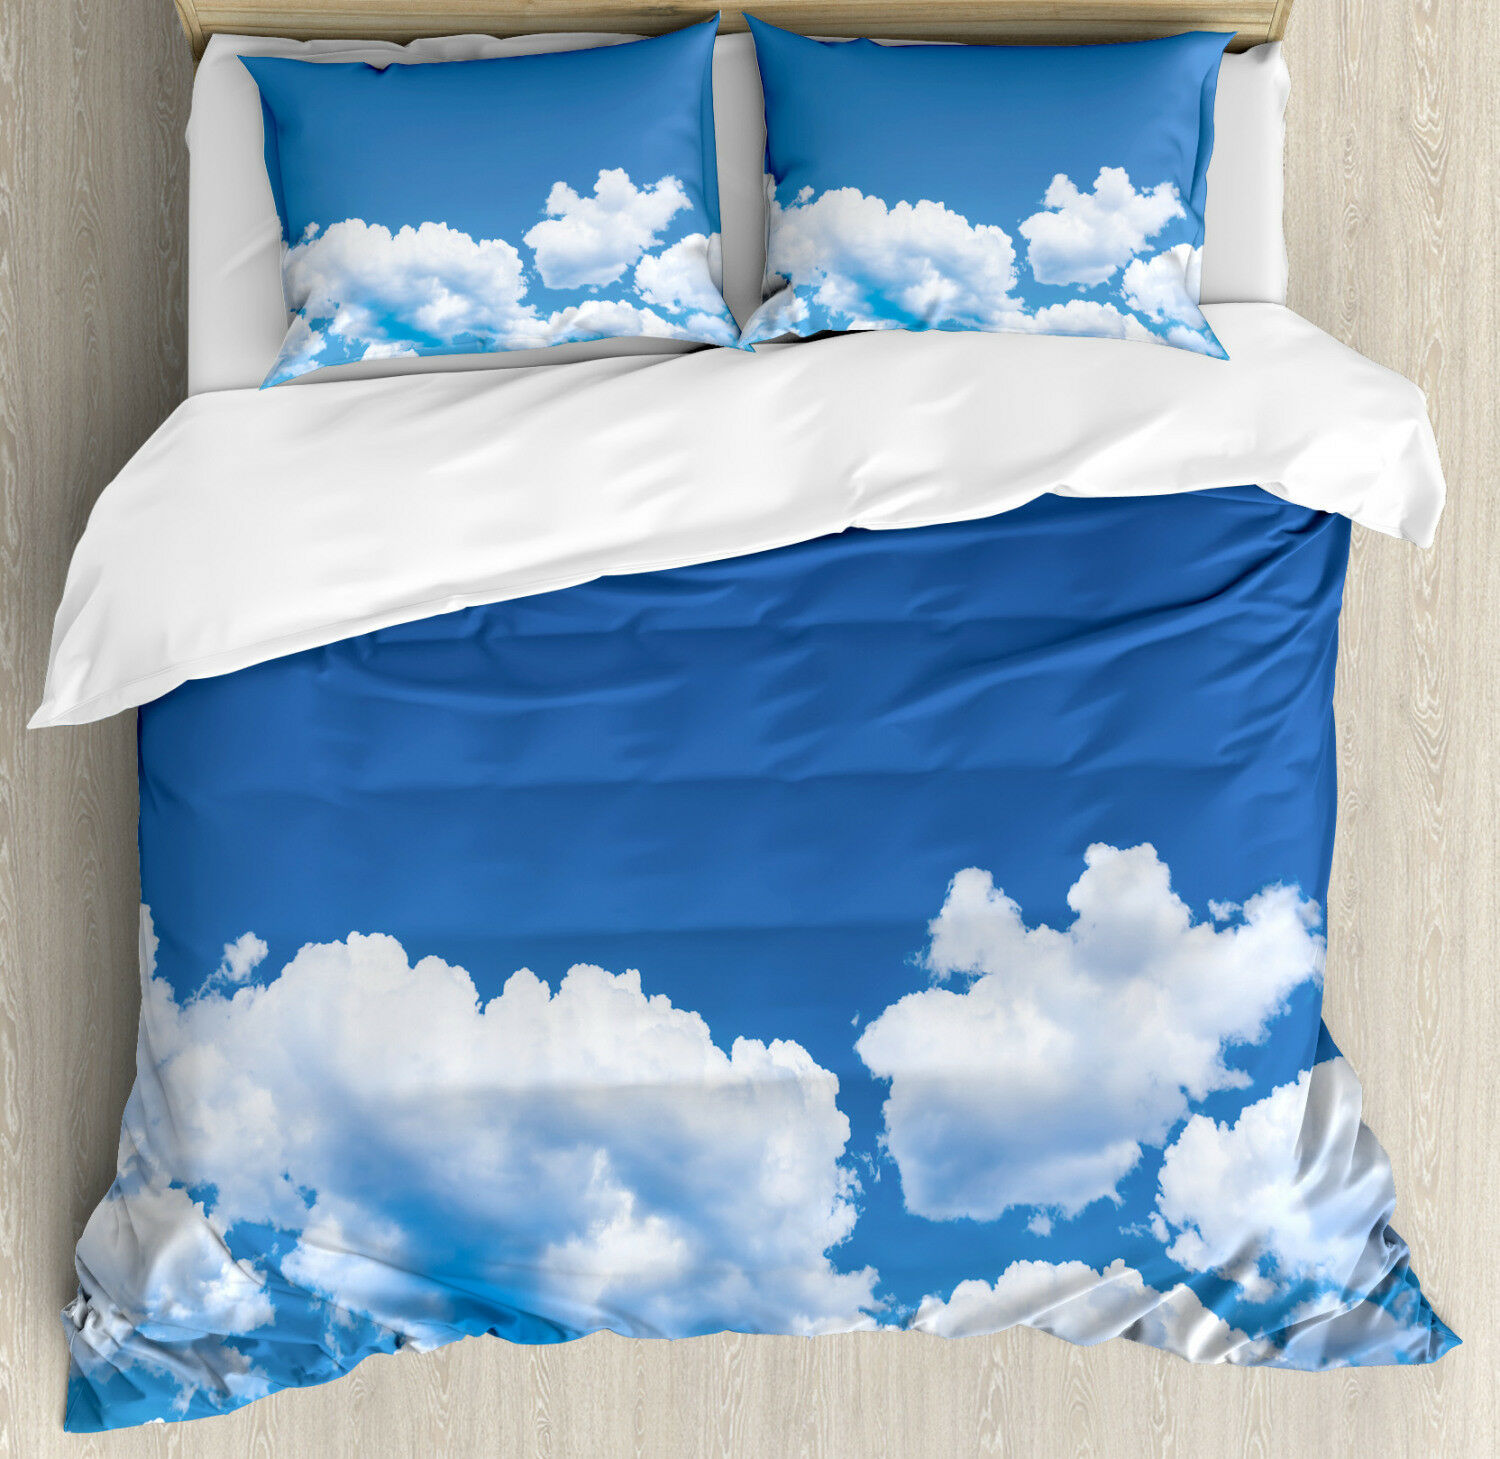 Clouds Duvet Cover Set with Pillow Shams Summertime Nature Scene Print